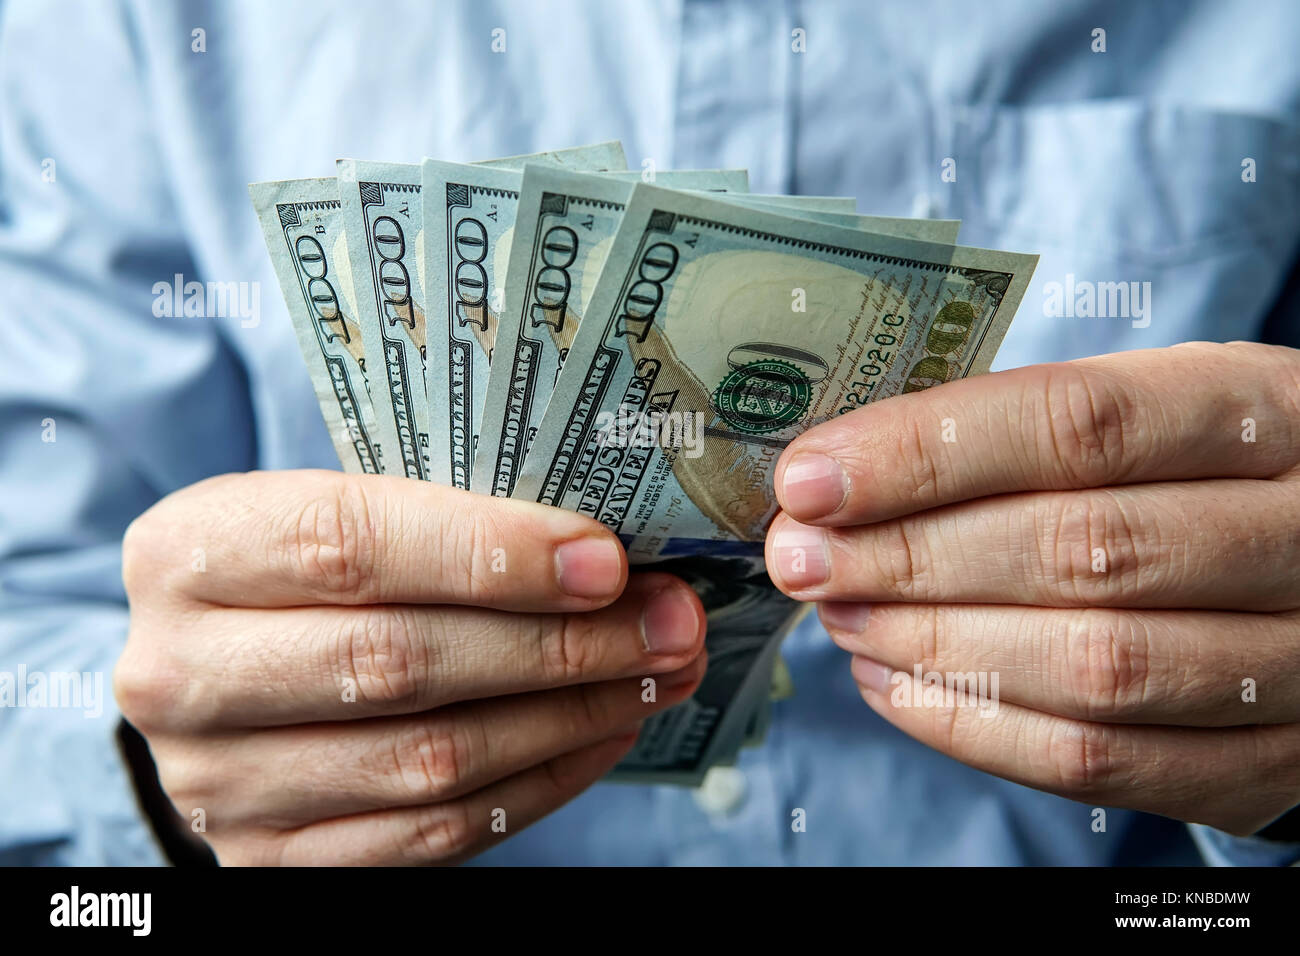 man counting five hundred US dollars. The businessman thinks of profit. Dollar bills in the hands of men on the - Stock Image